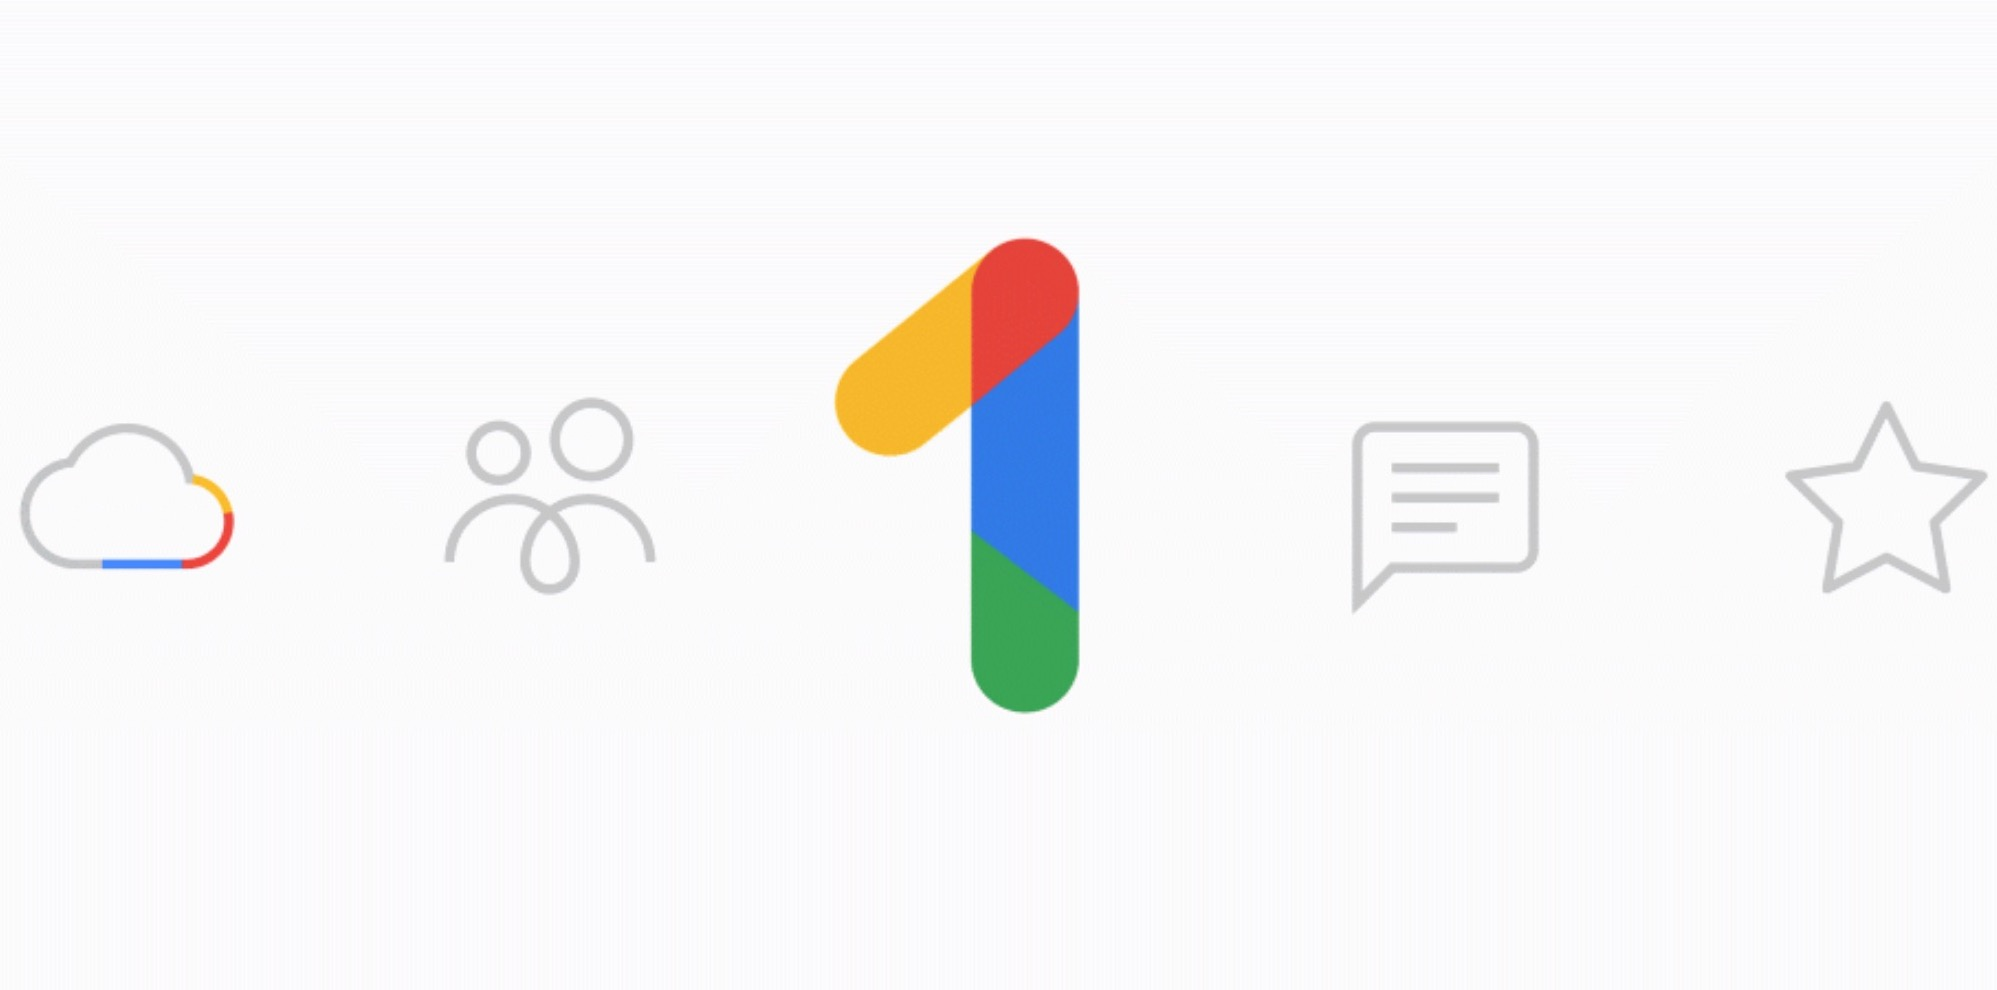 google one now publicly available new google store perks coming soon